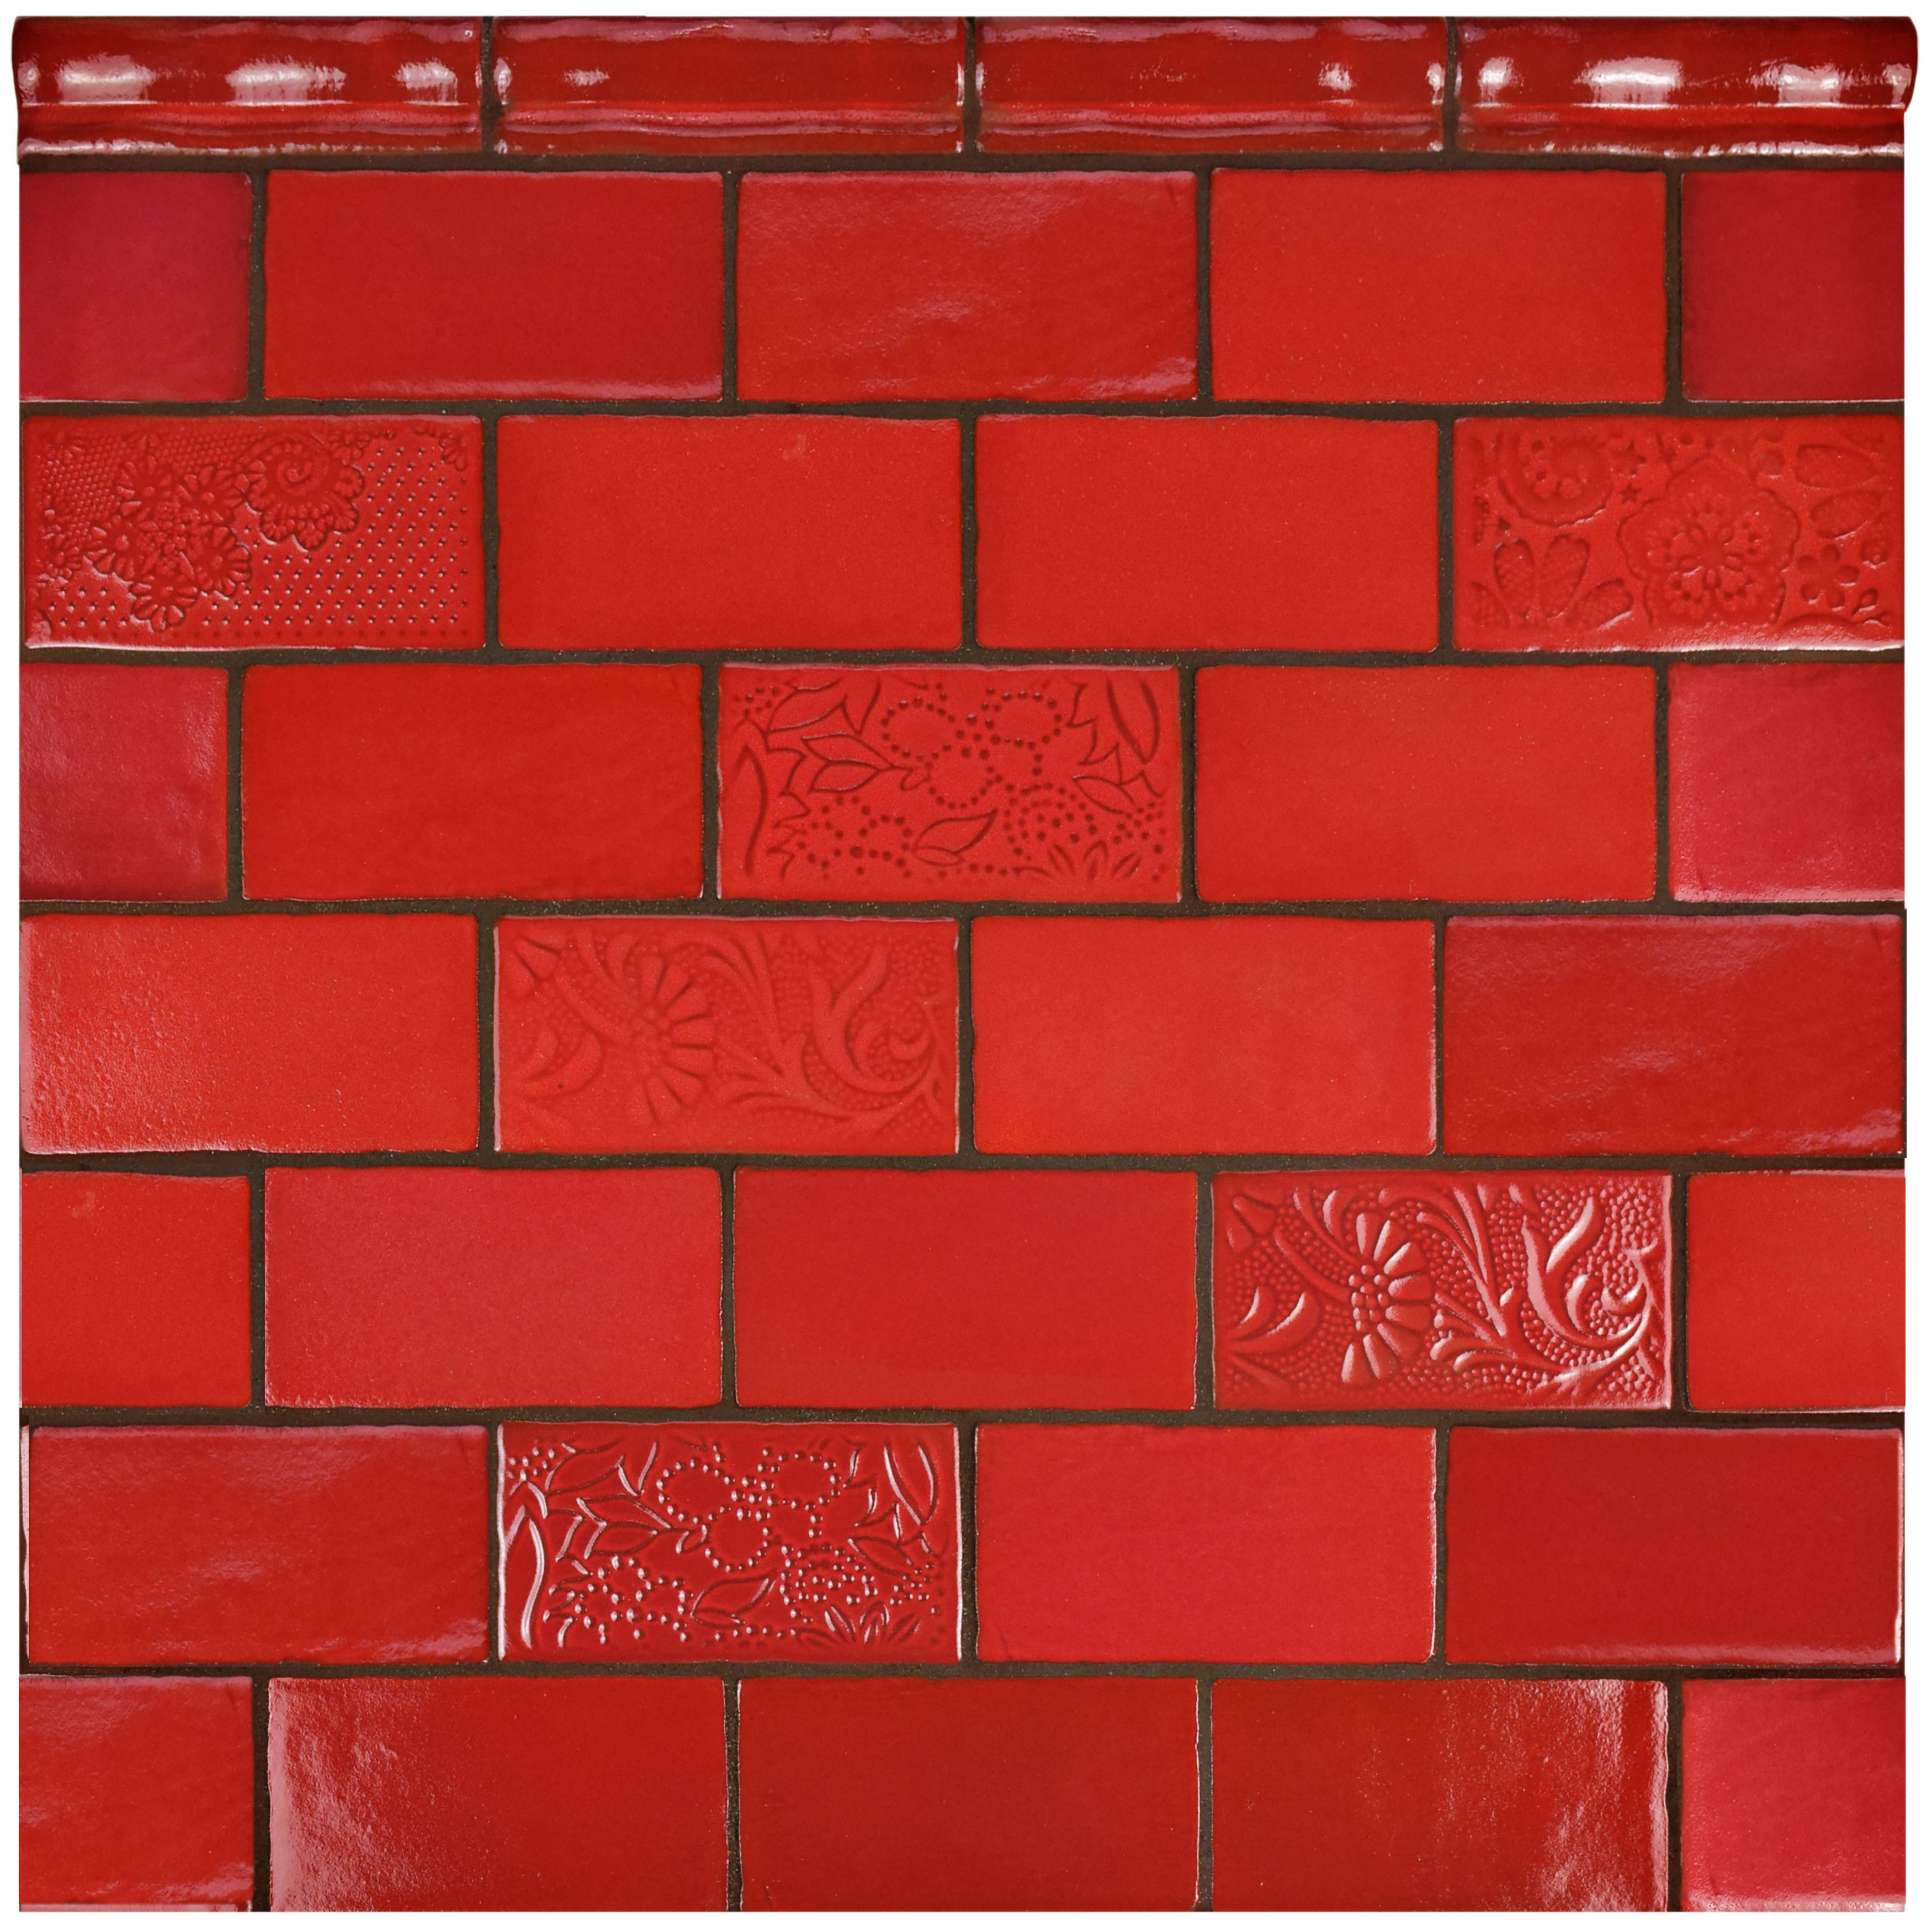 Antiqua 3 x 6 ceramic subway tile in feelings red moon red antiqua 3 x 6 ceramic subway tile in feelings red moon dailygadgetfo Image collections